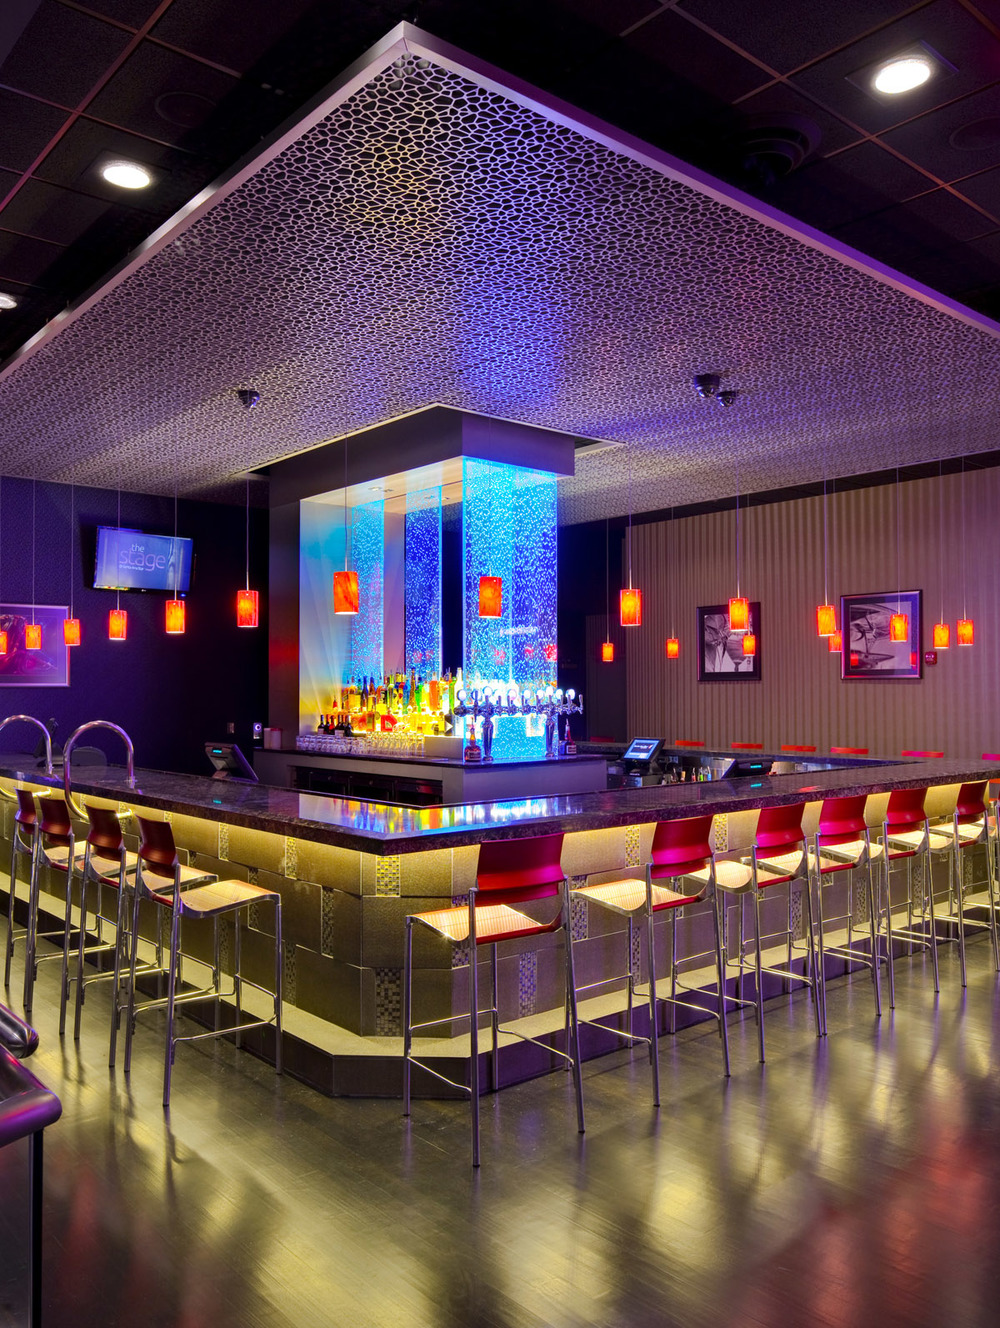 one of the bars at The Stage @ Santa Ana Star - learn more about the project here